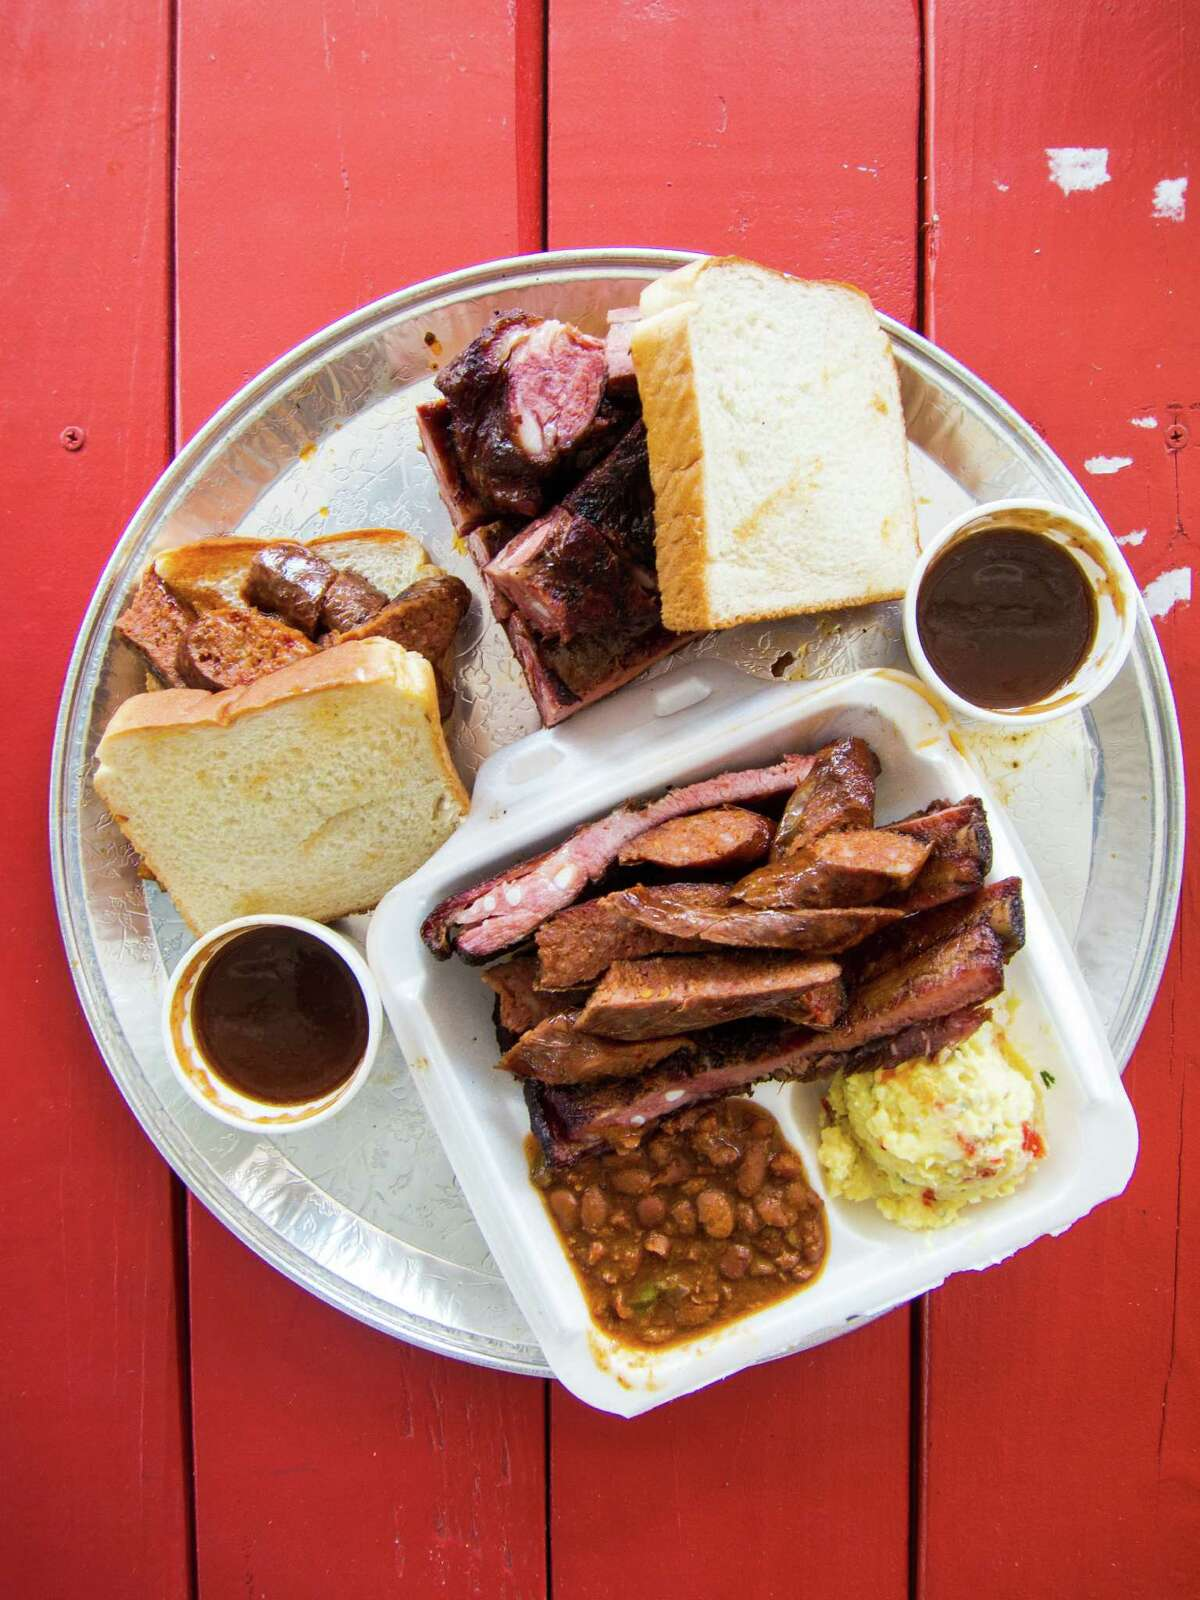 Links and ribs plate and sandwiches at Burns Original BBQ. Burns Original BBQ